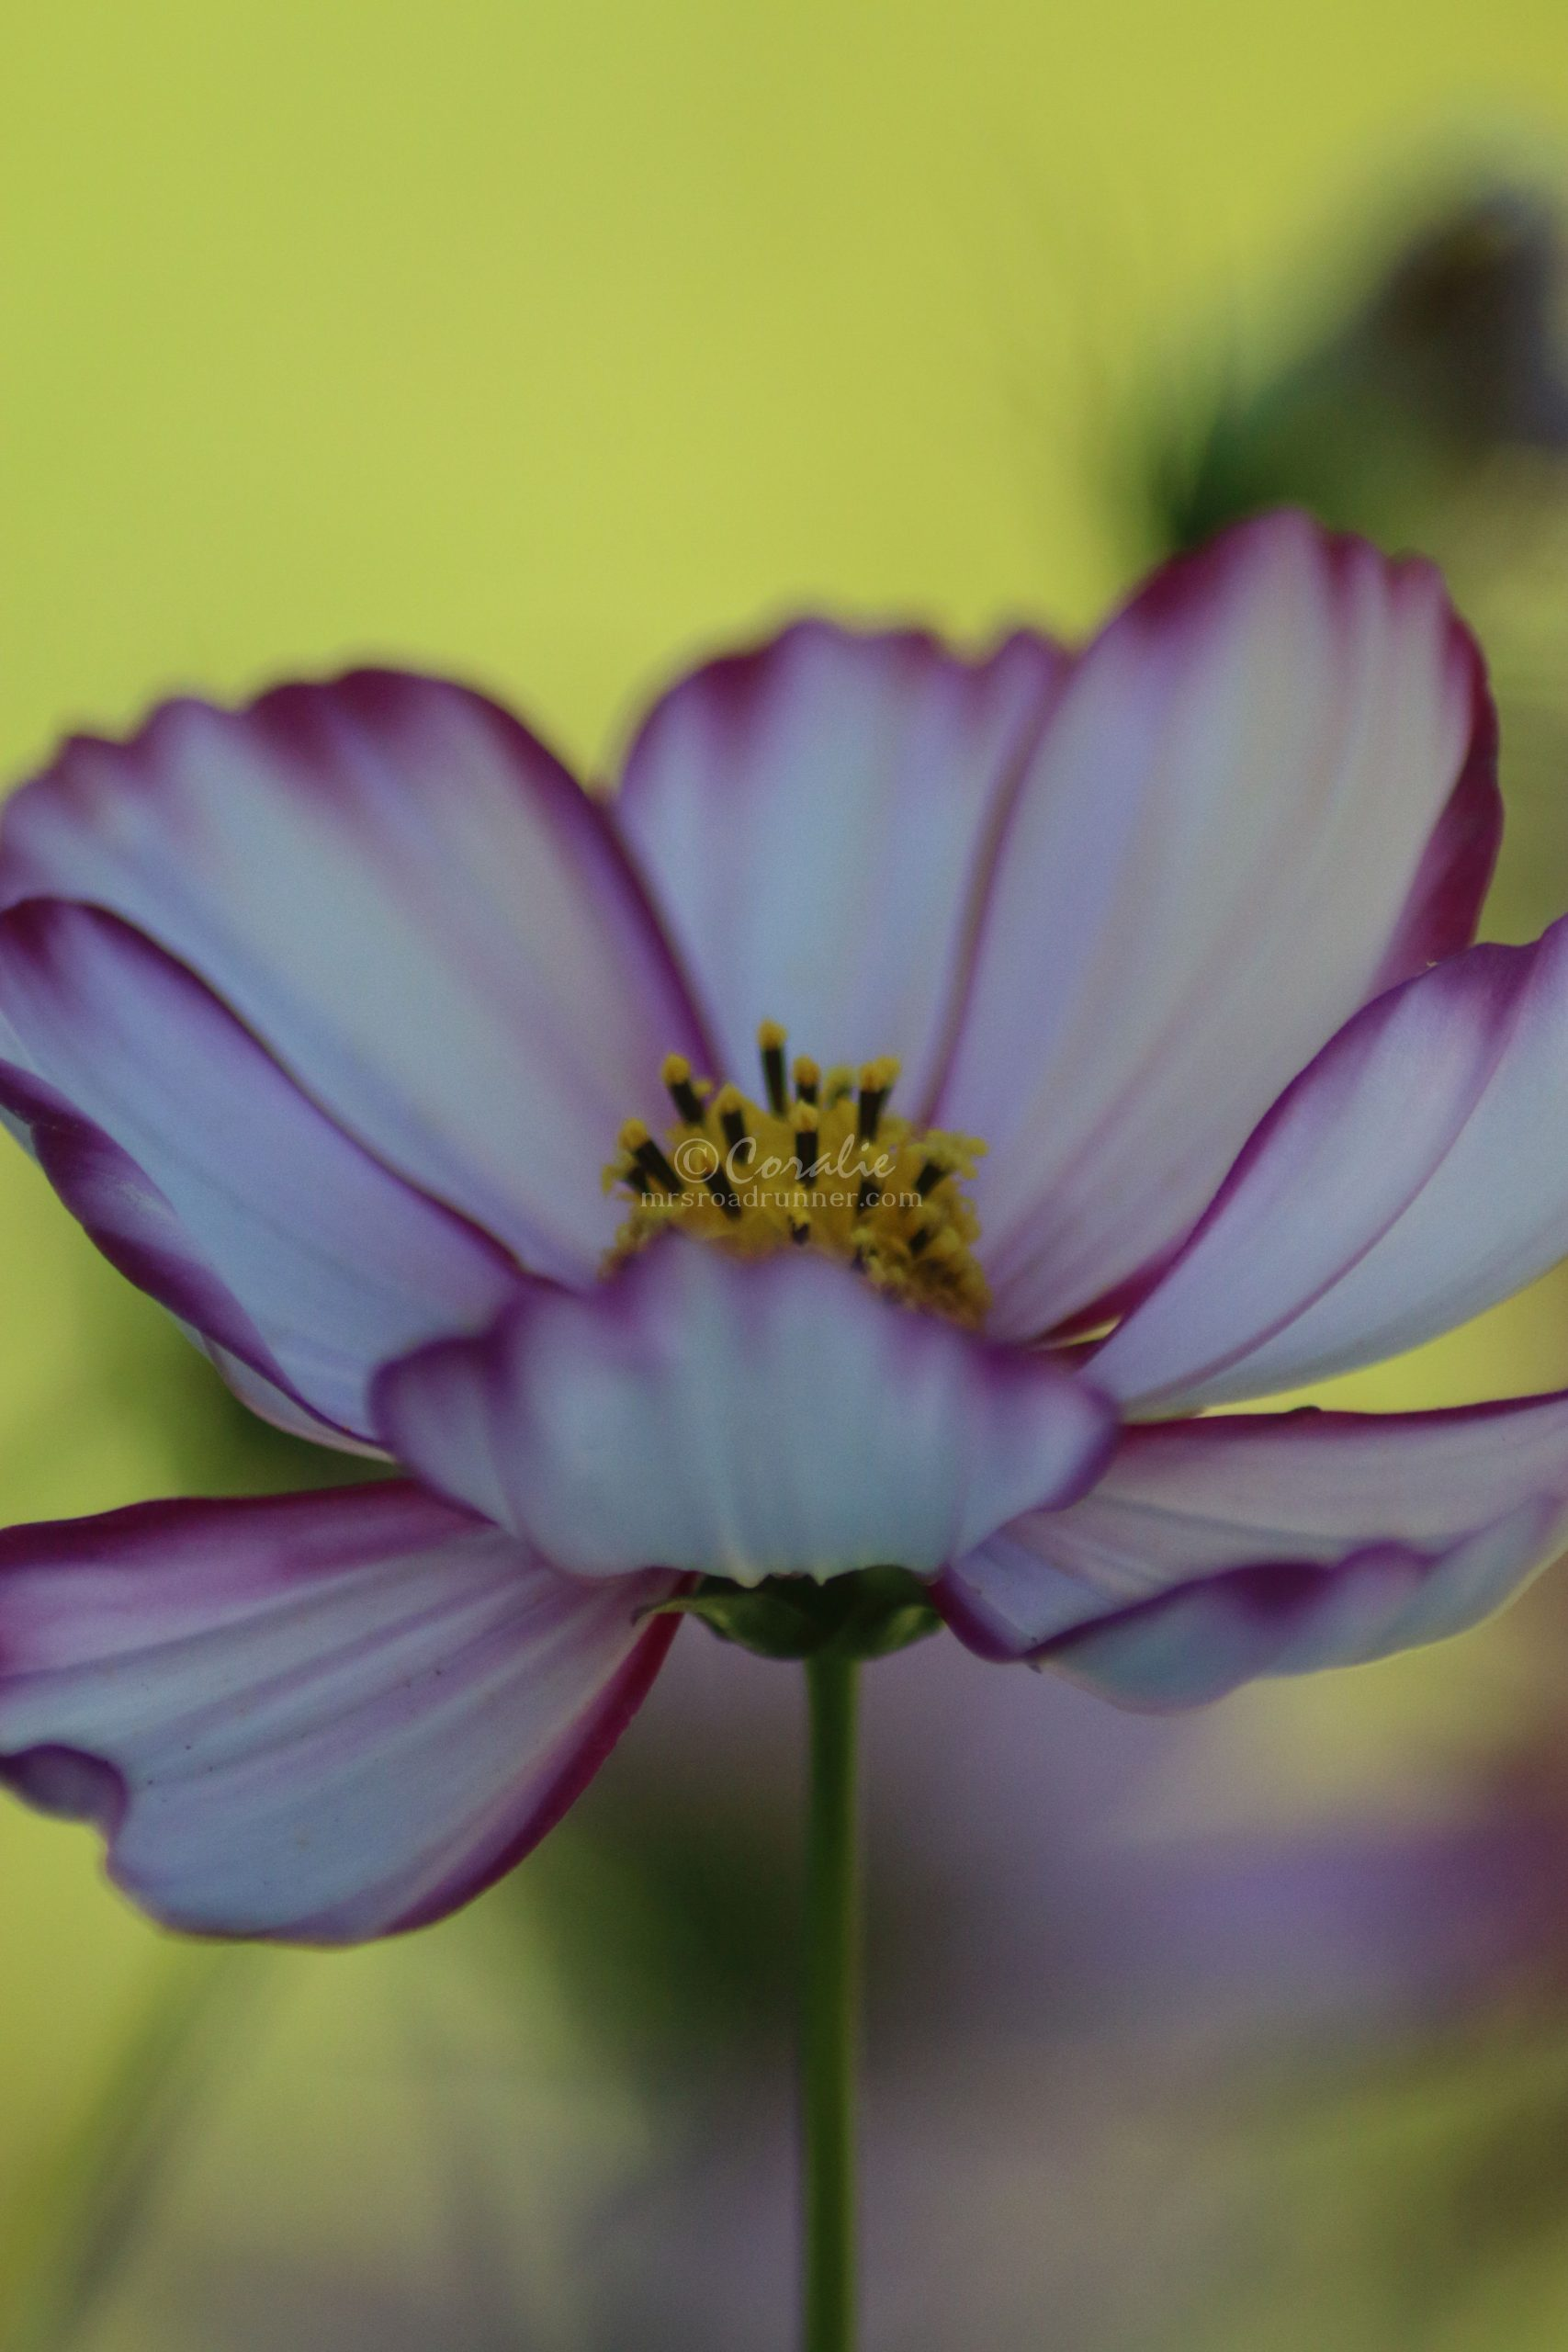 Cosmos Flower Blooms in October